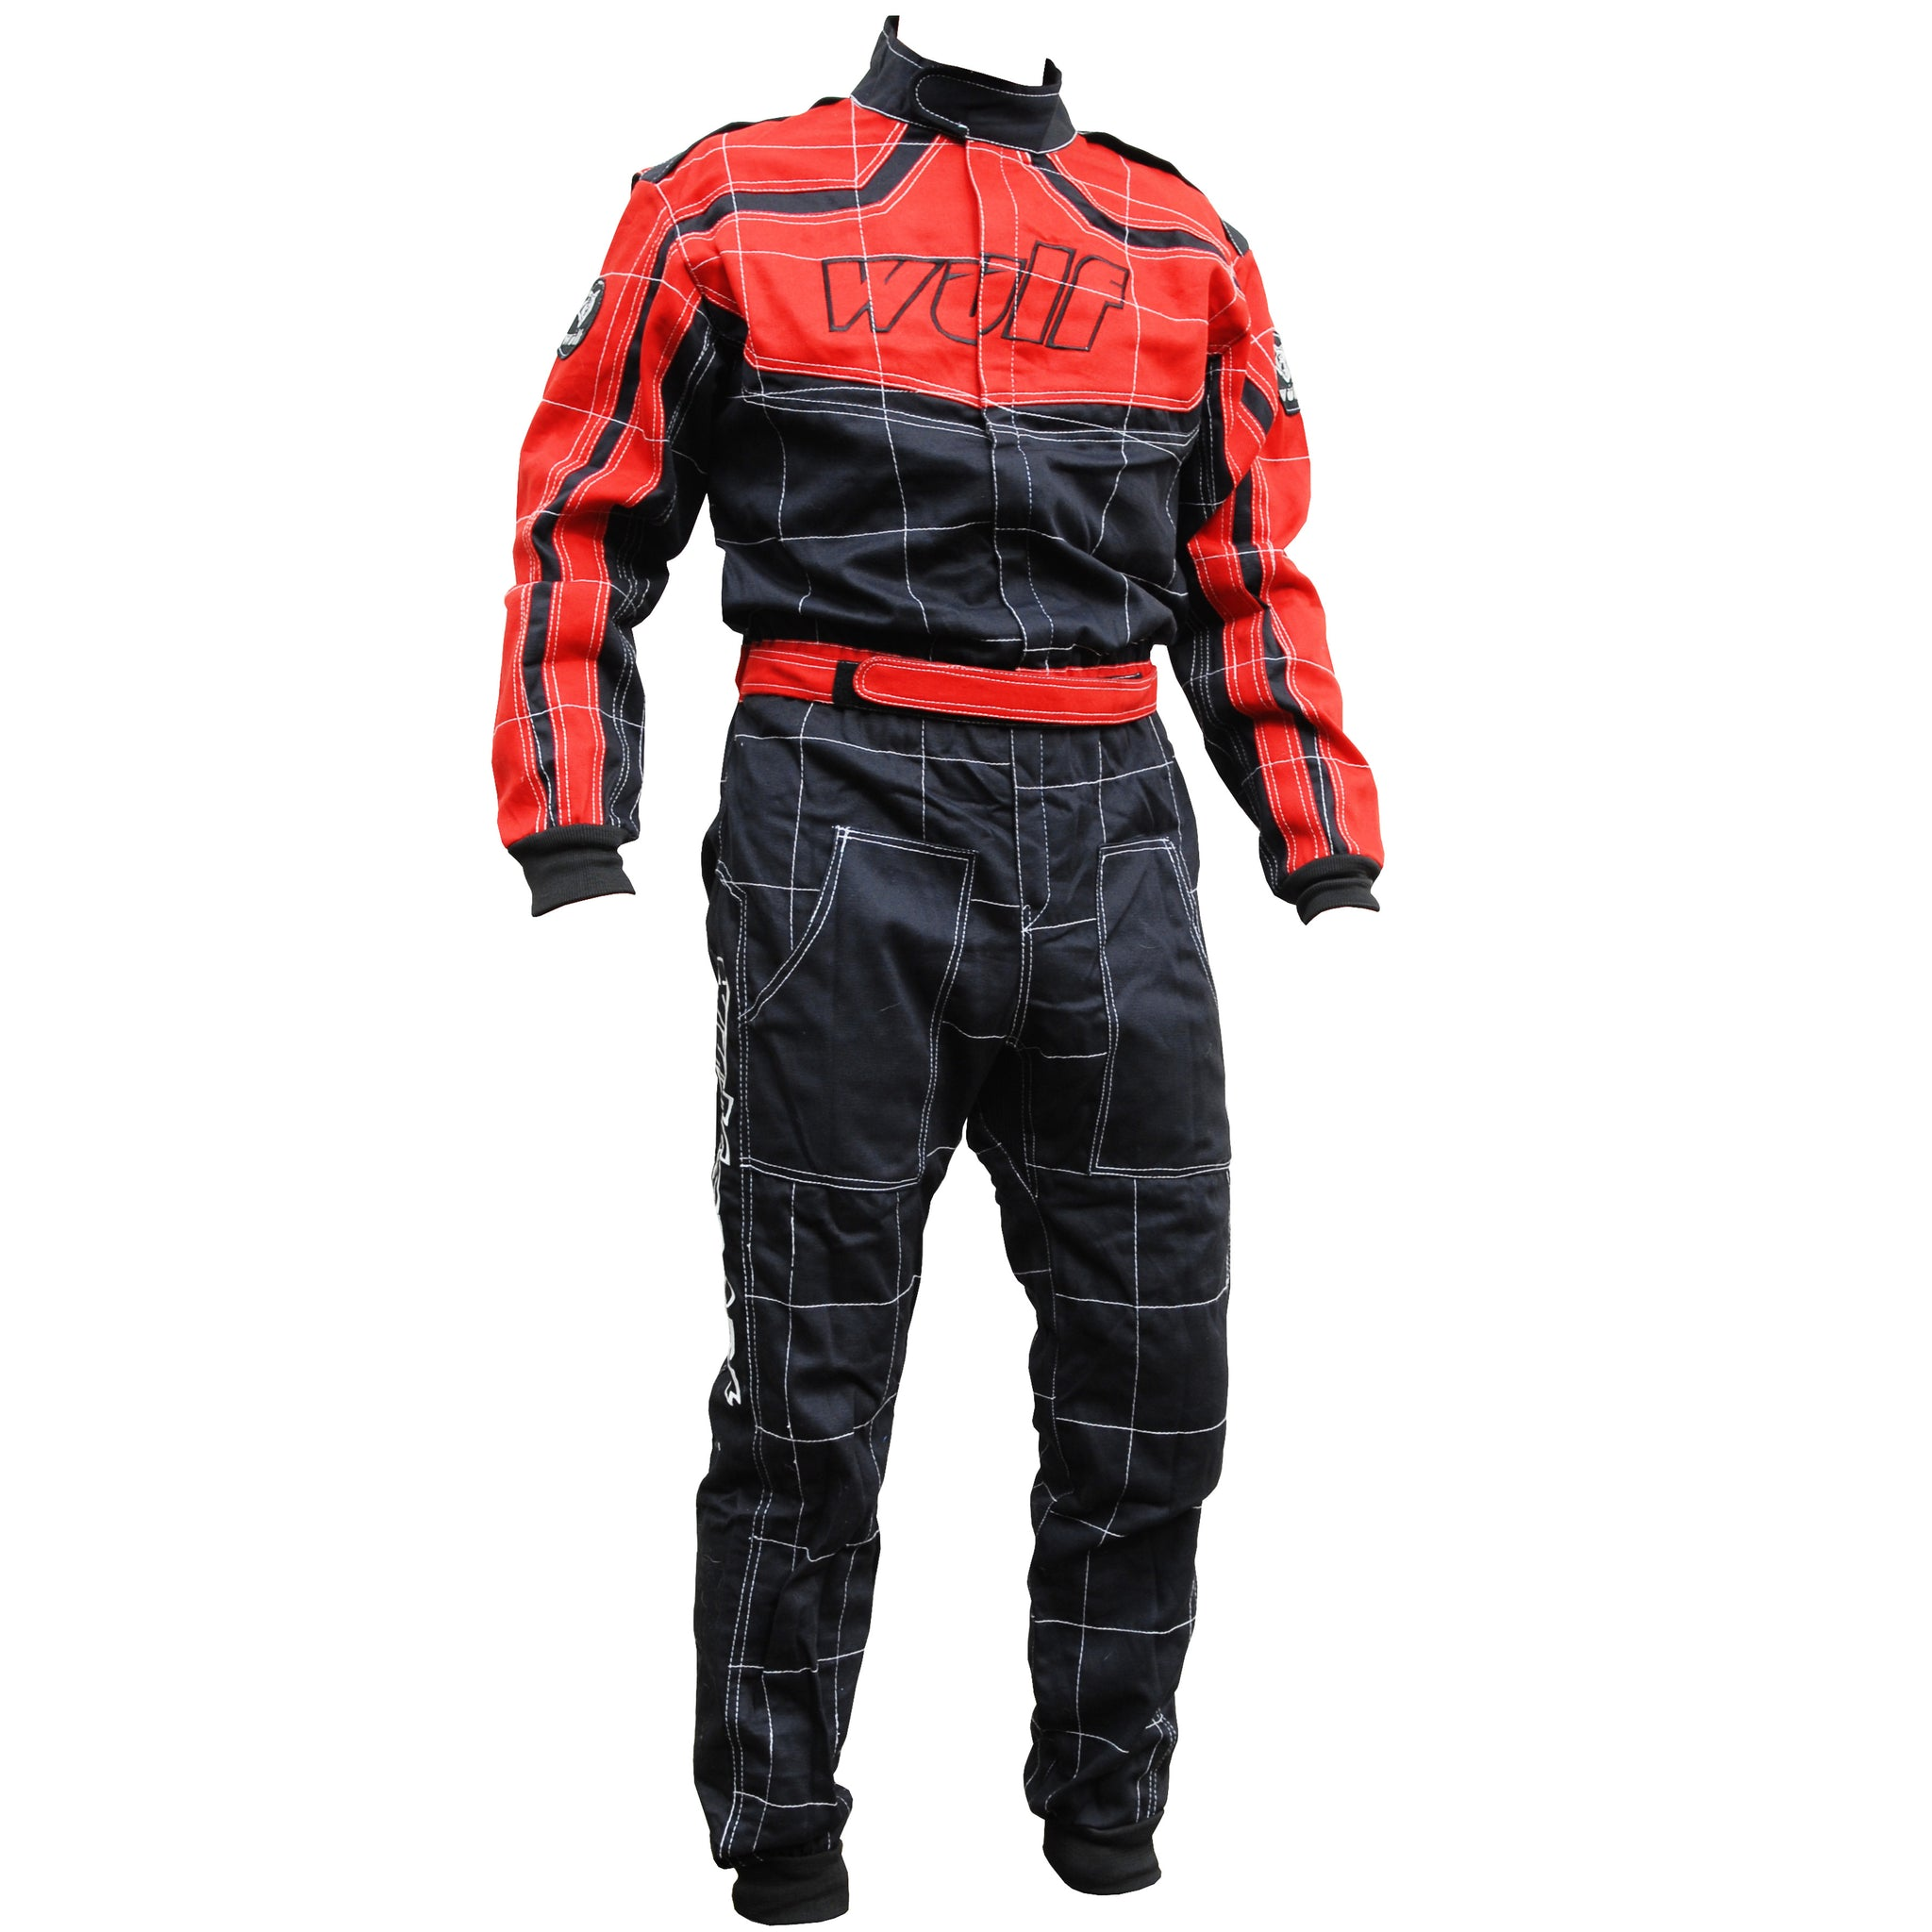 Wulf Proban Race Suit